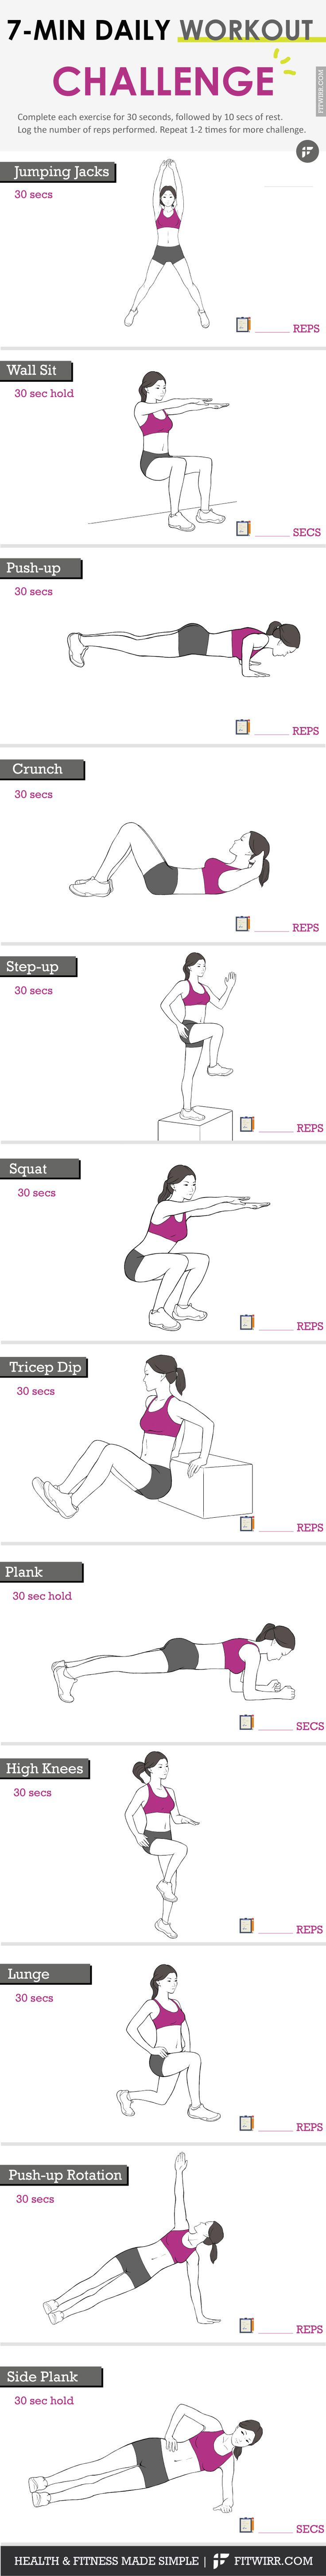 7-minute daily workout challenge